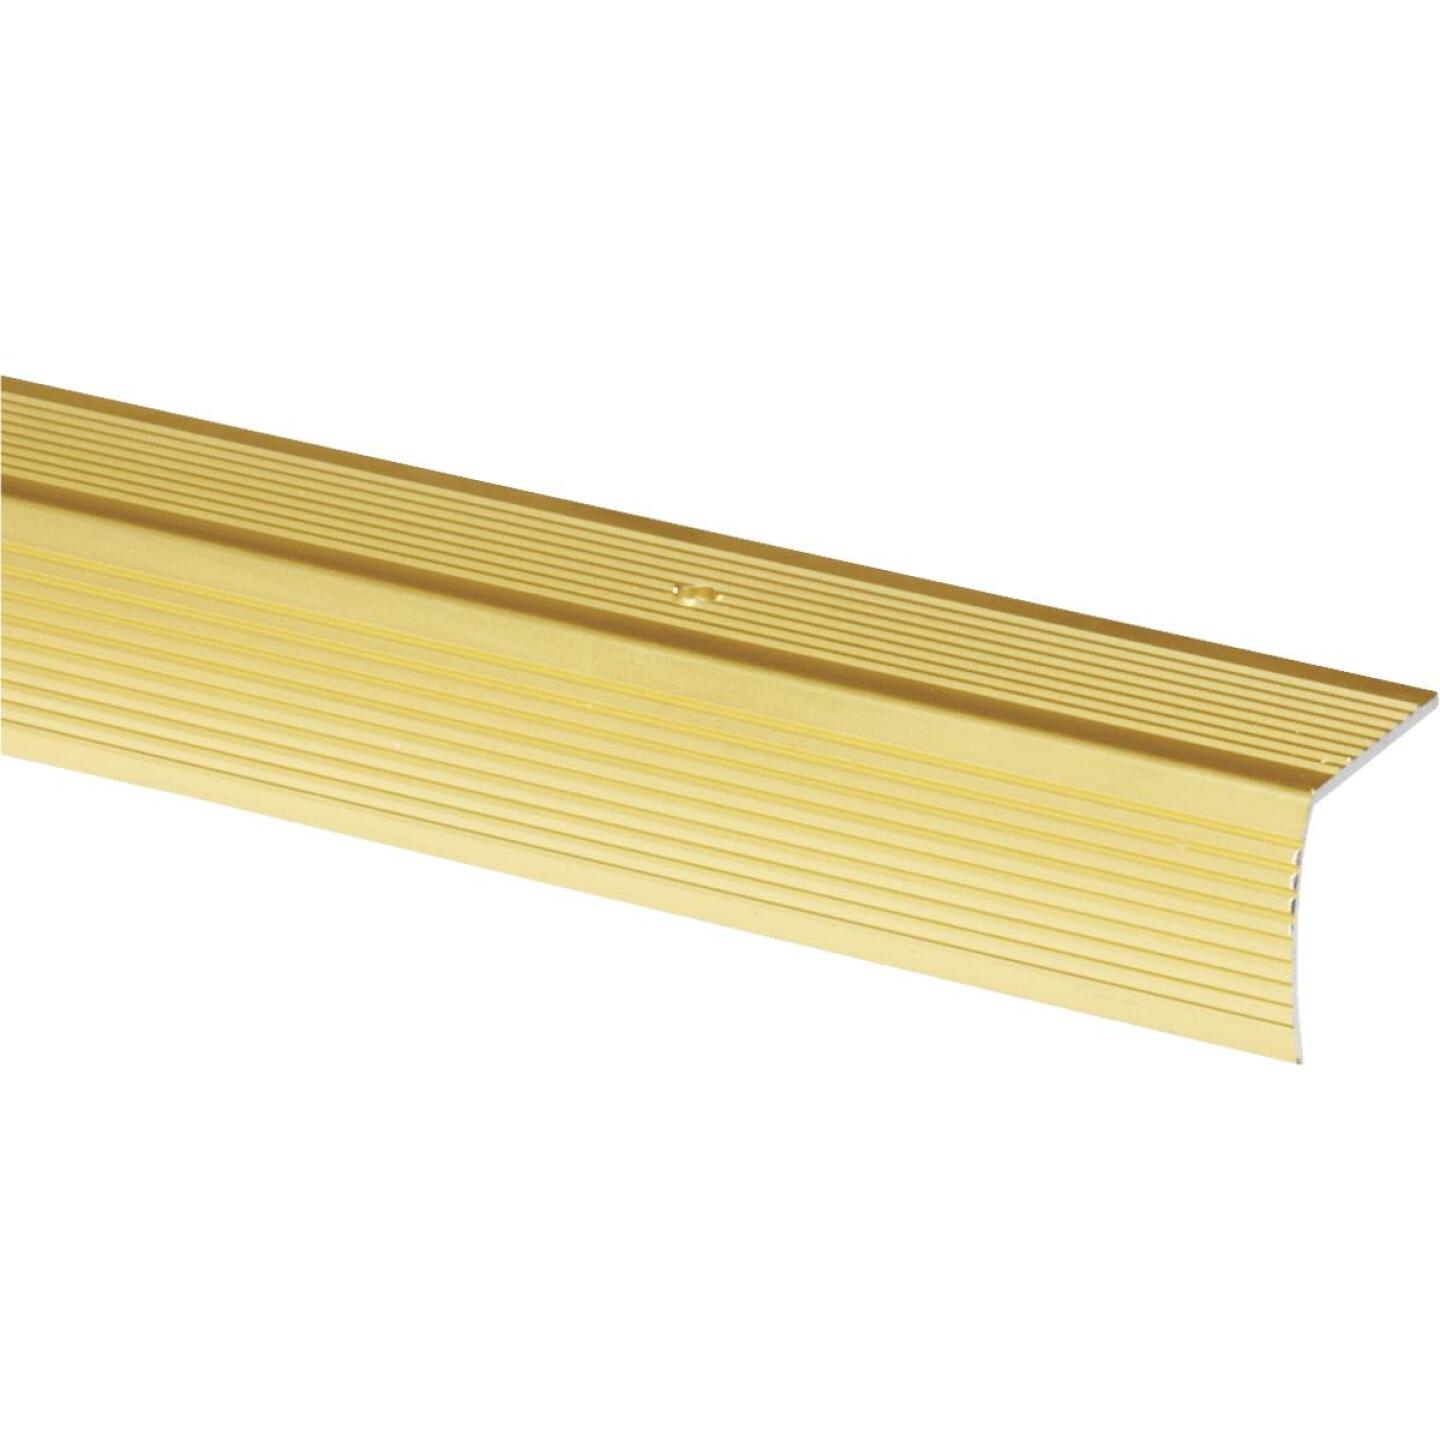 Do it Satin Gold 1-1/8 In. W x 36 In. L Aluminum Stairnose Image 1